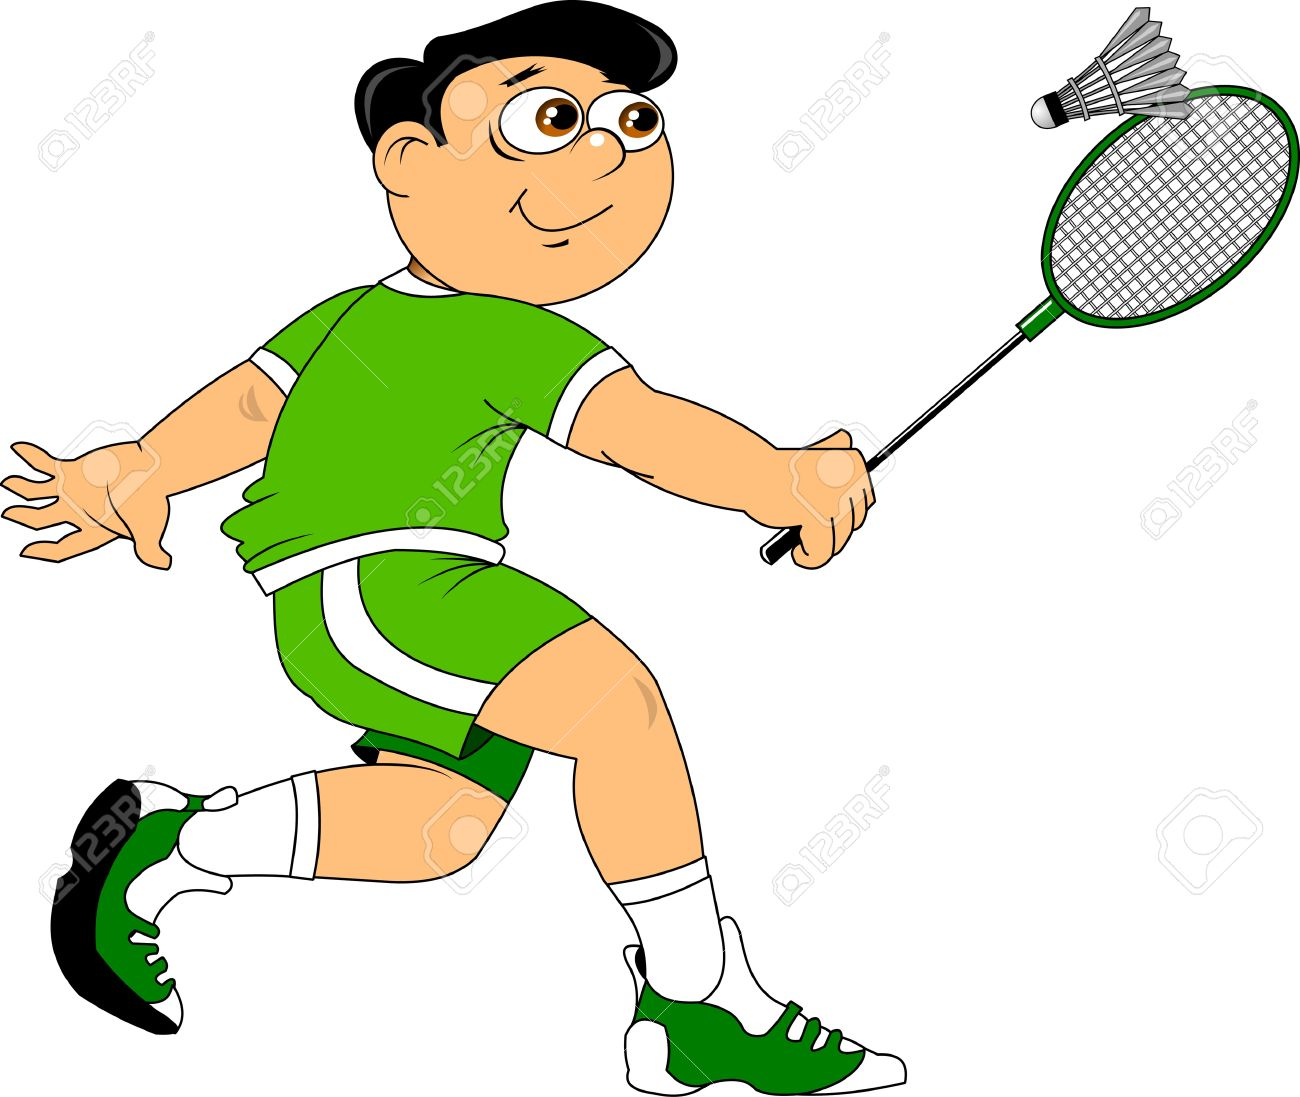 teenager in a green uniform playing badminton royalty free cliparts rh 123rf com badminton clipart cute badminton clipart image